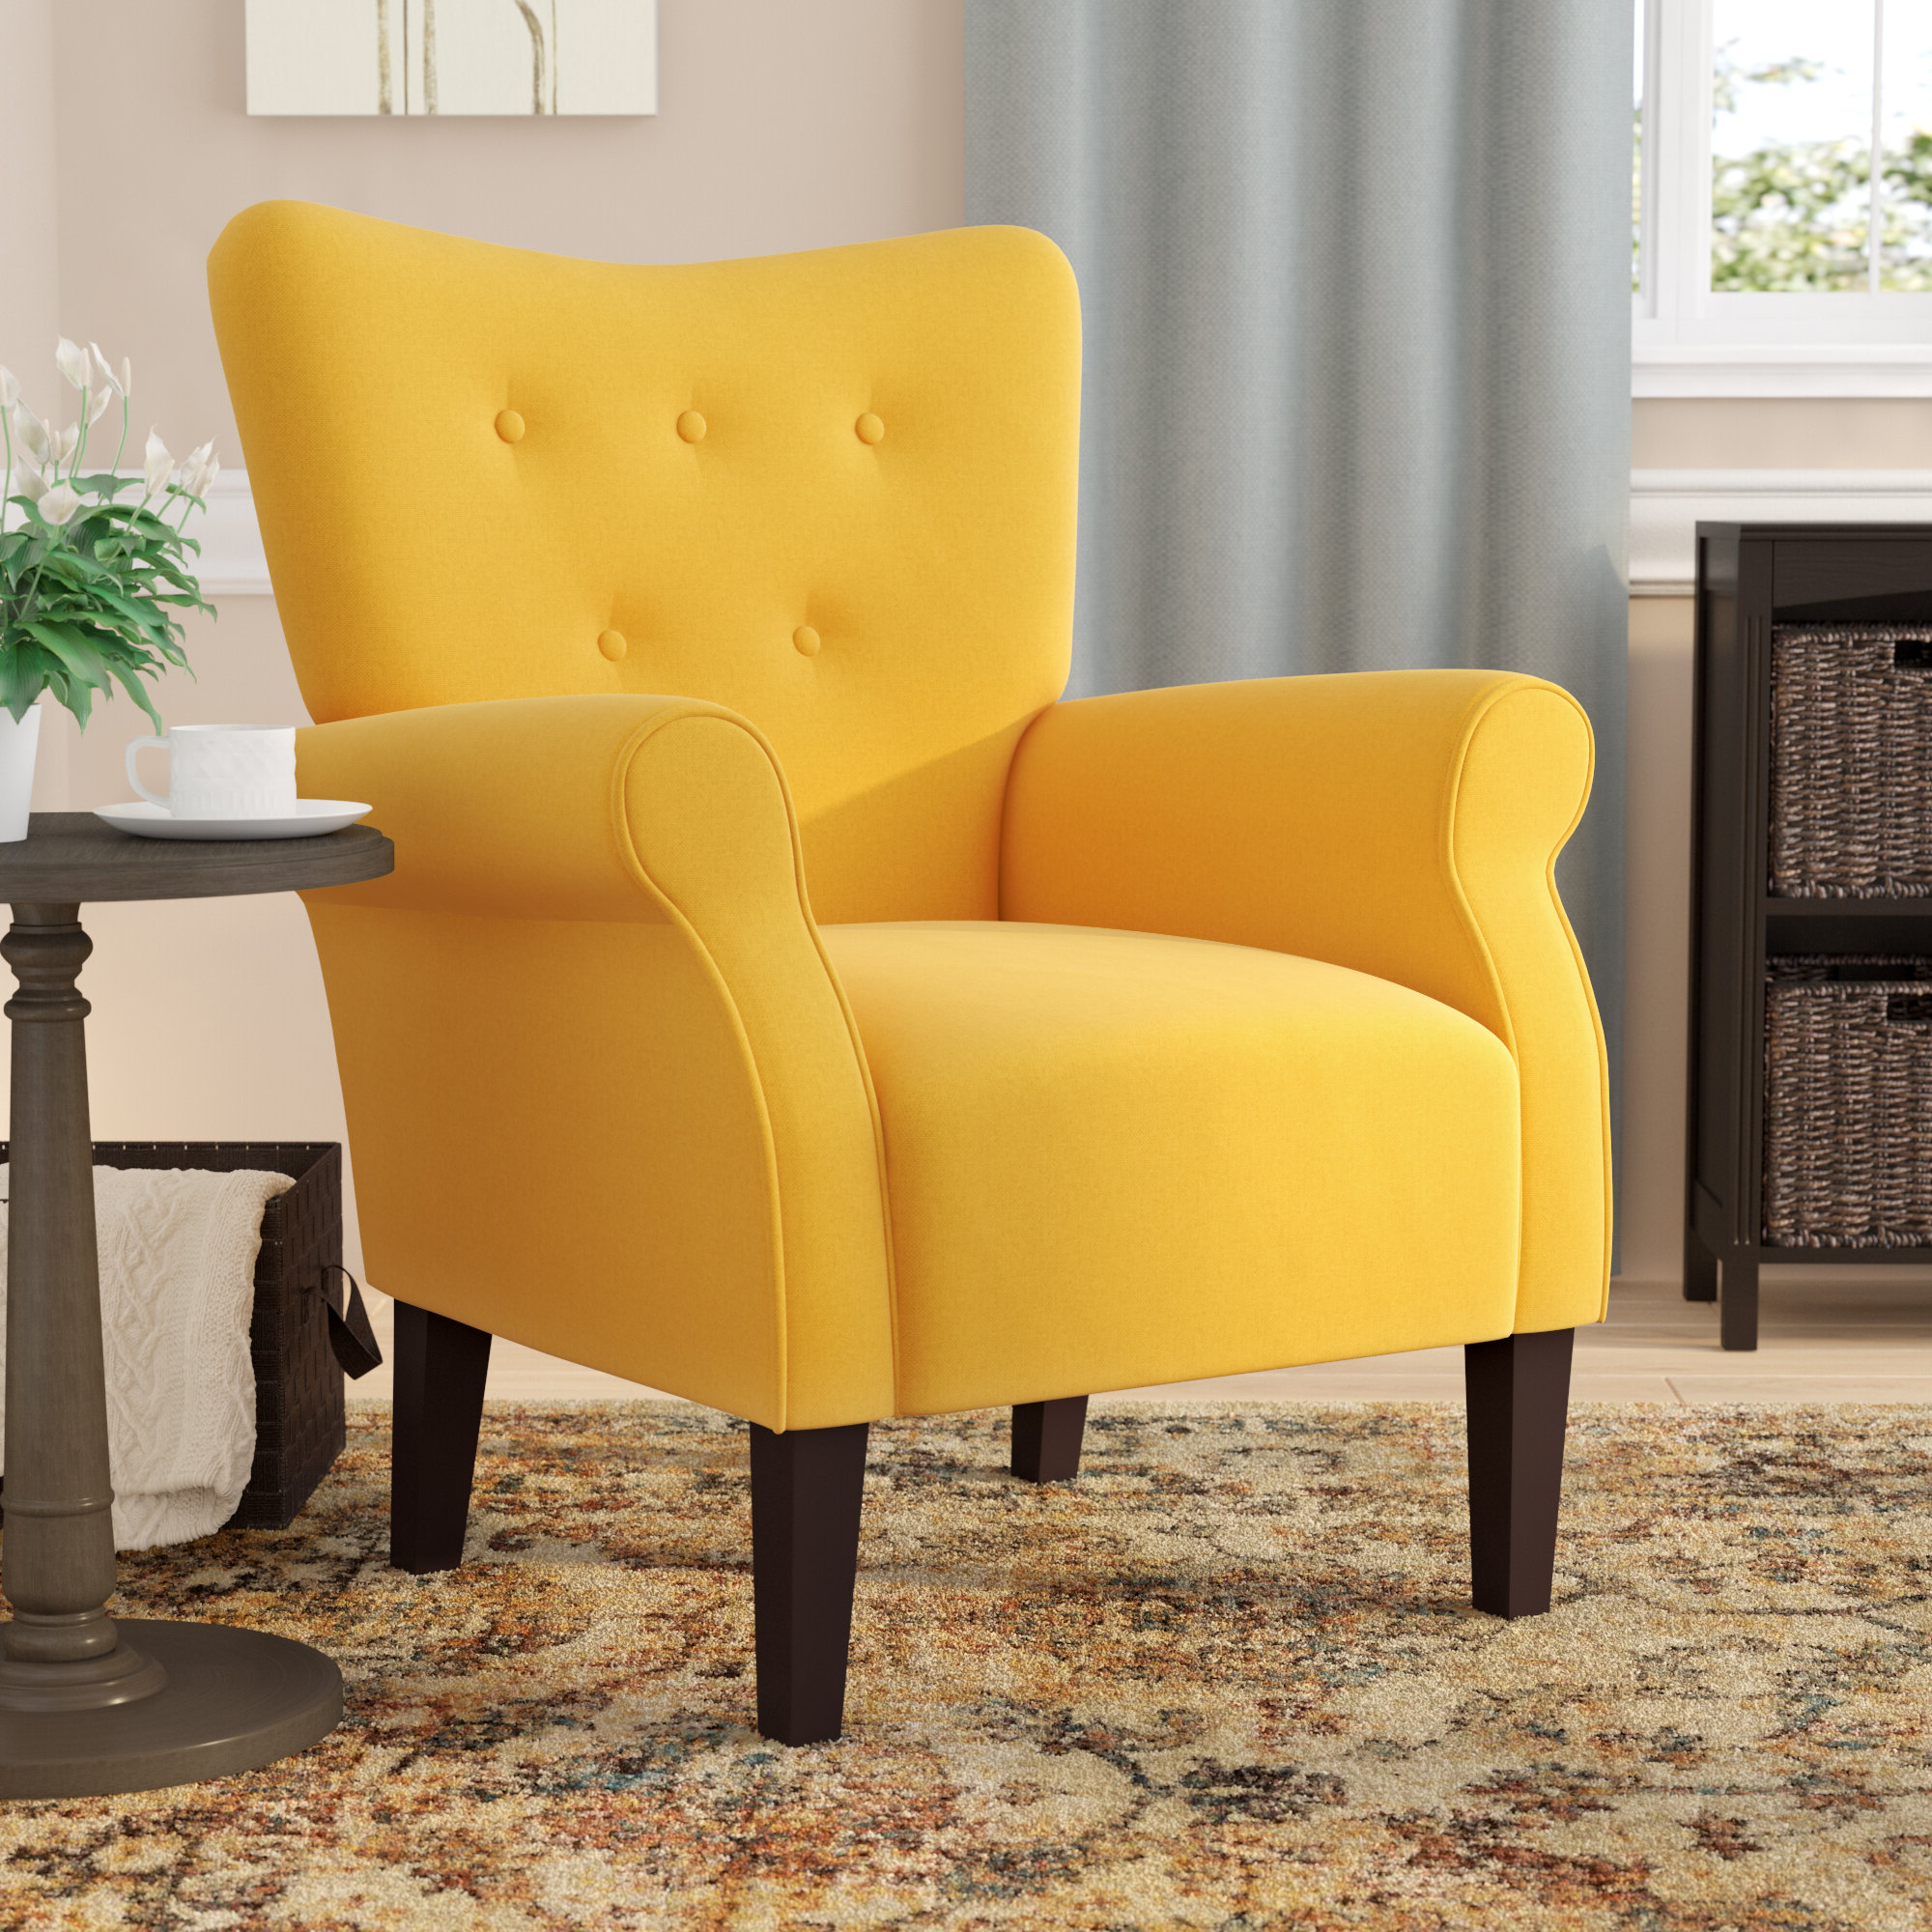 Oglesby Armchairs Regarding Most Recently Released Armchairs (View 10 of 20)